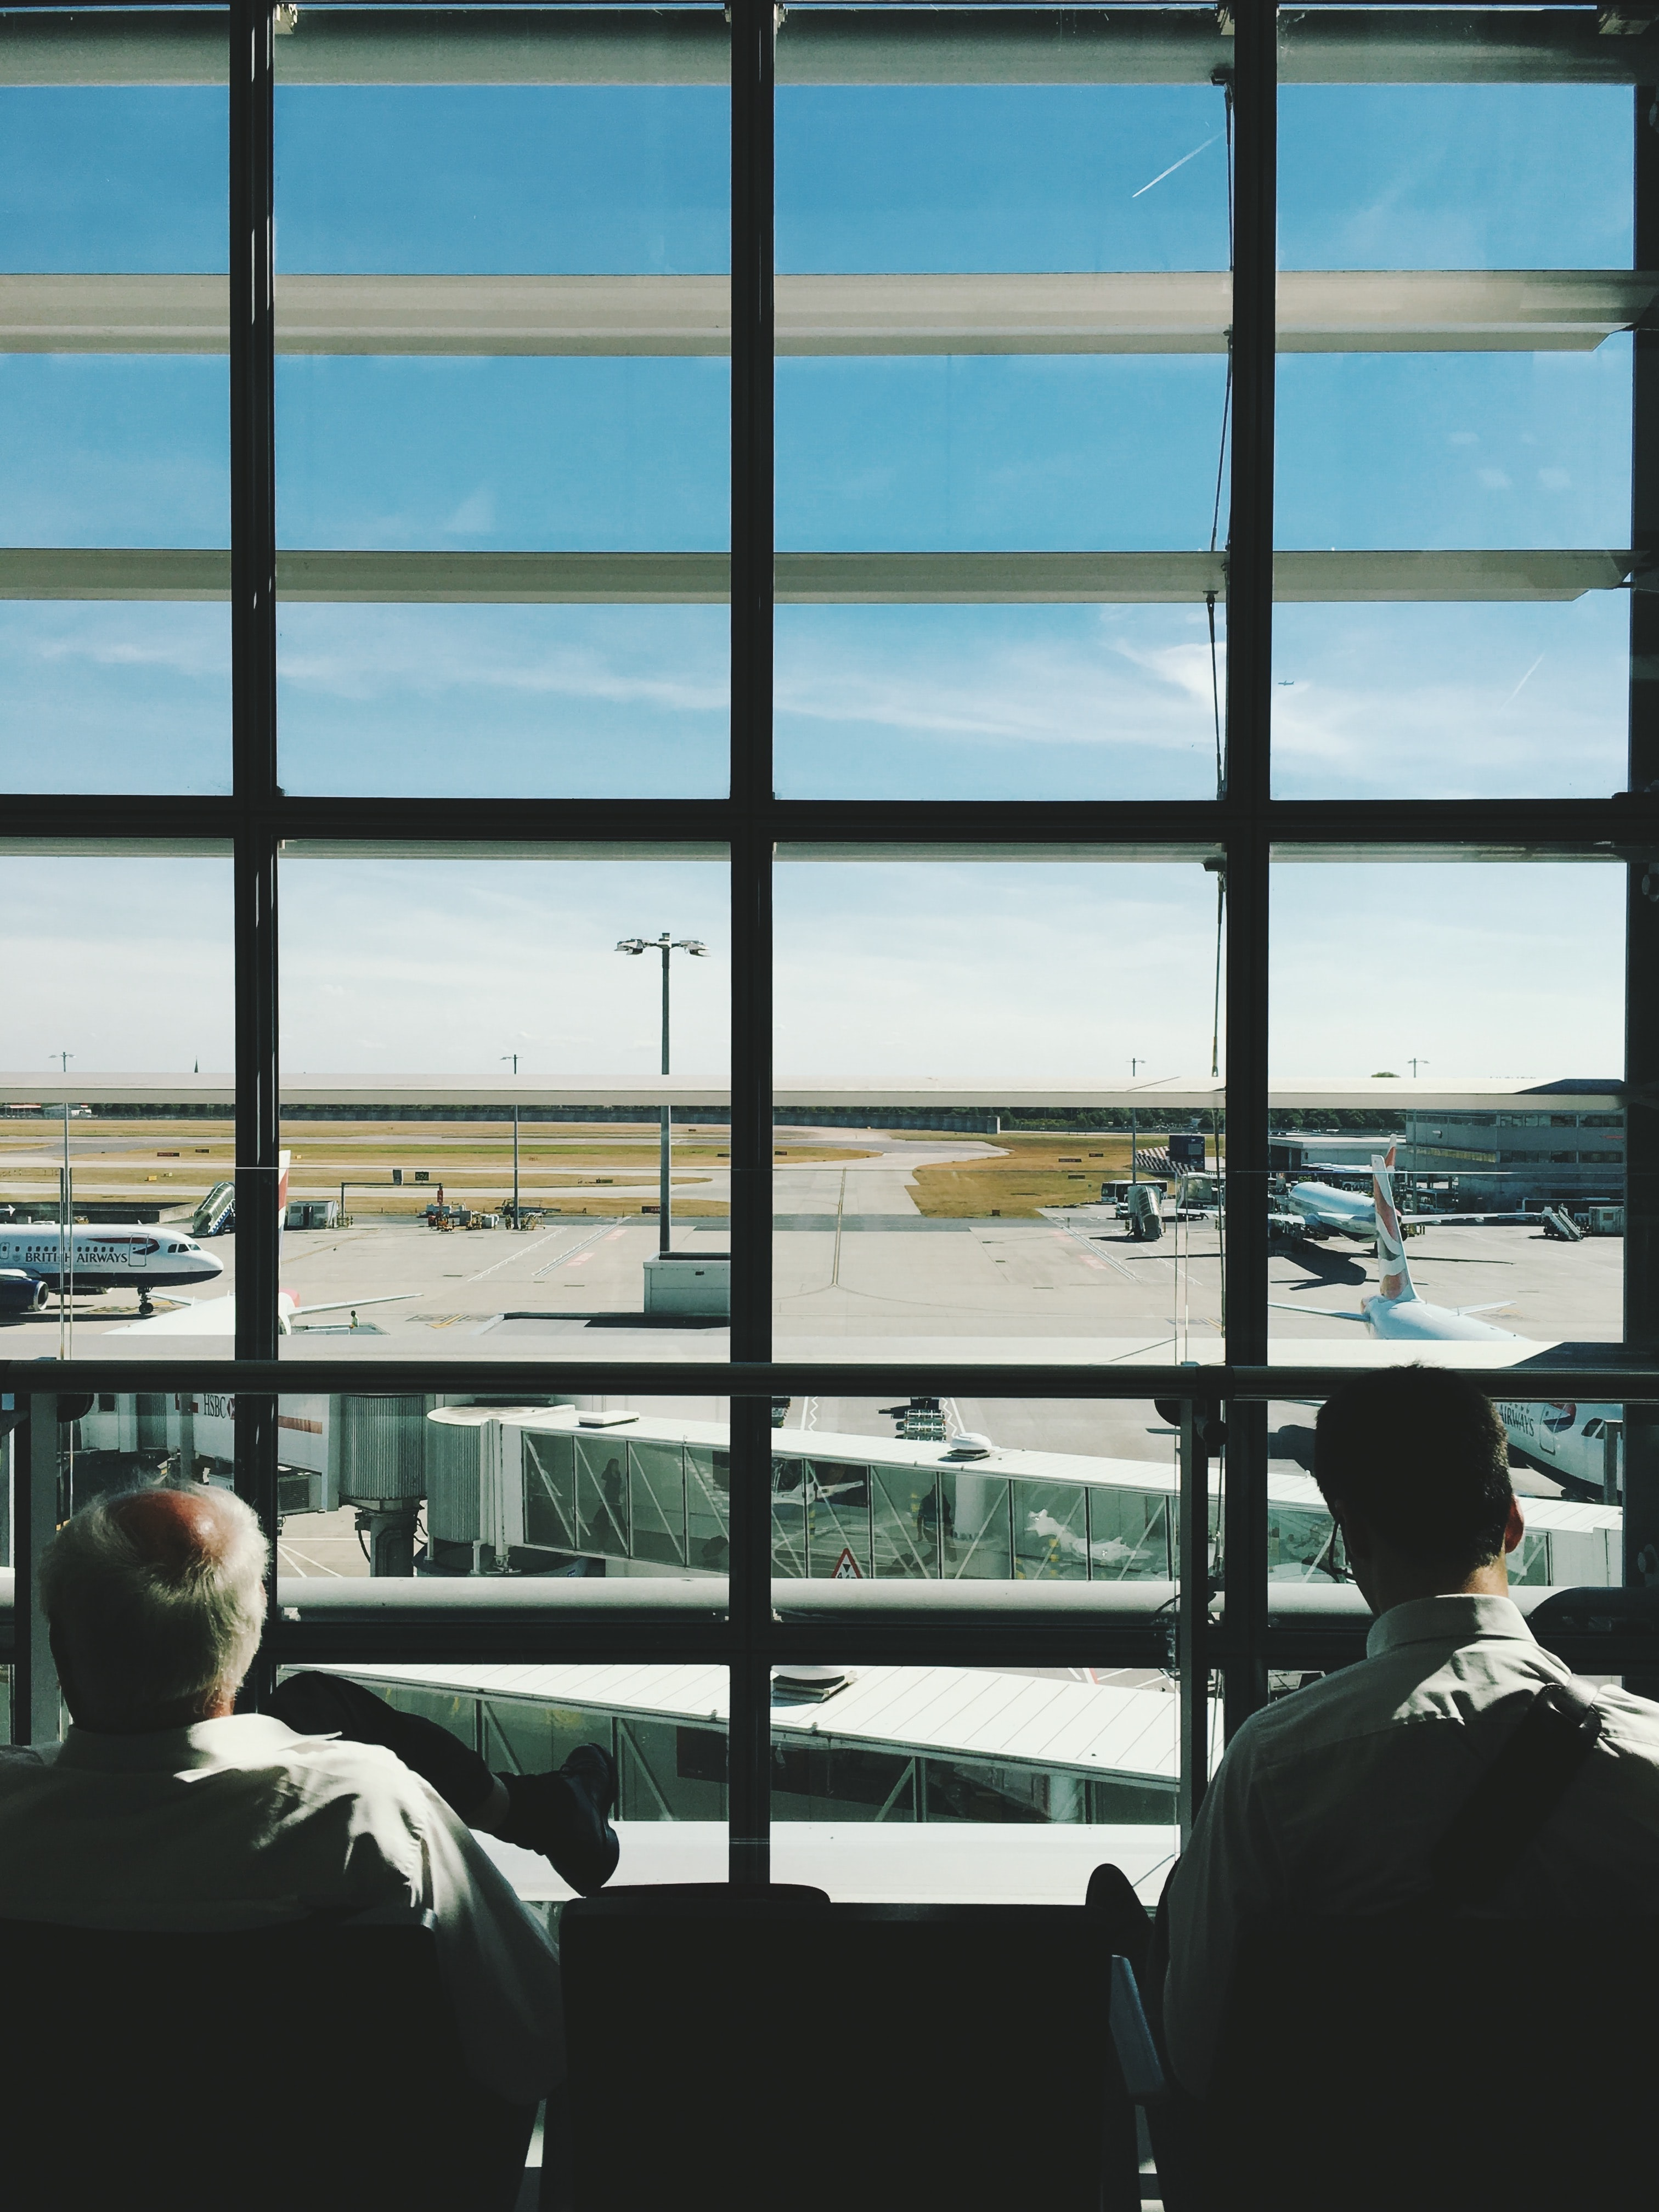 Sitting at an airport looking out at the runway from the terminal windows at Heathrow Airport.